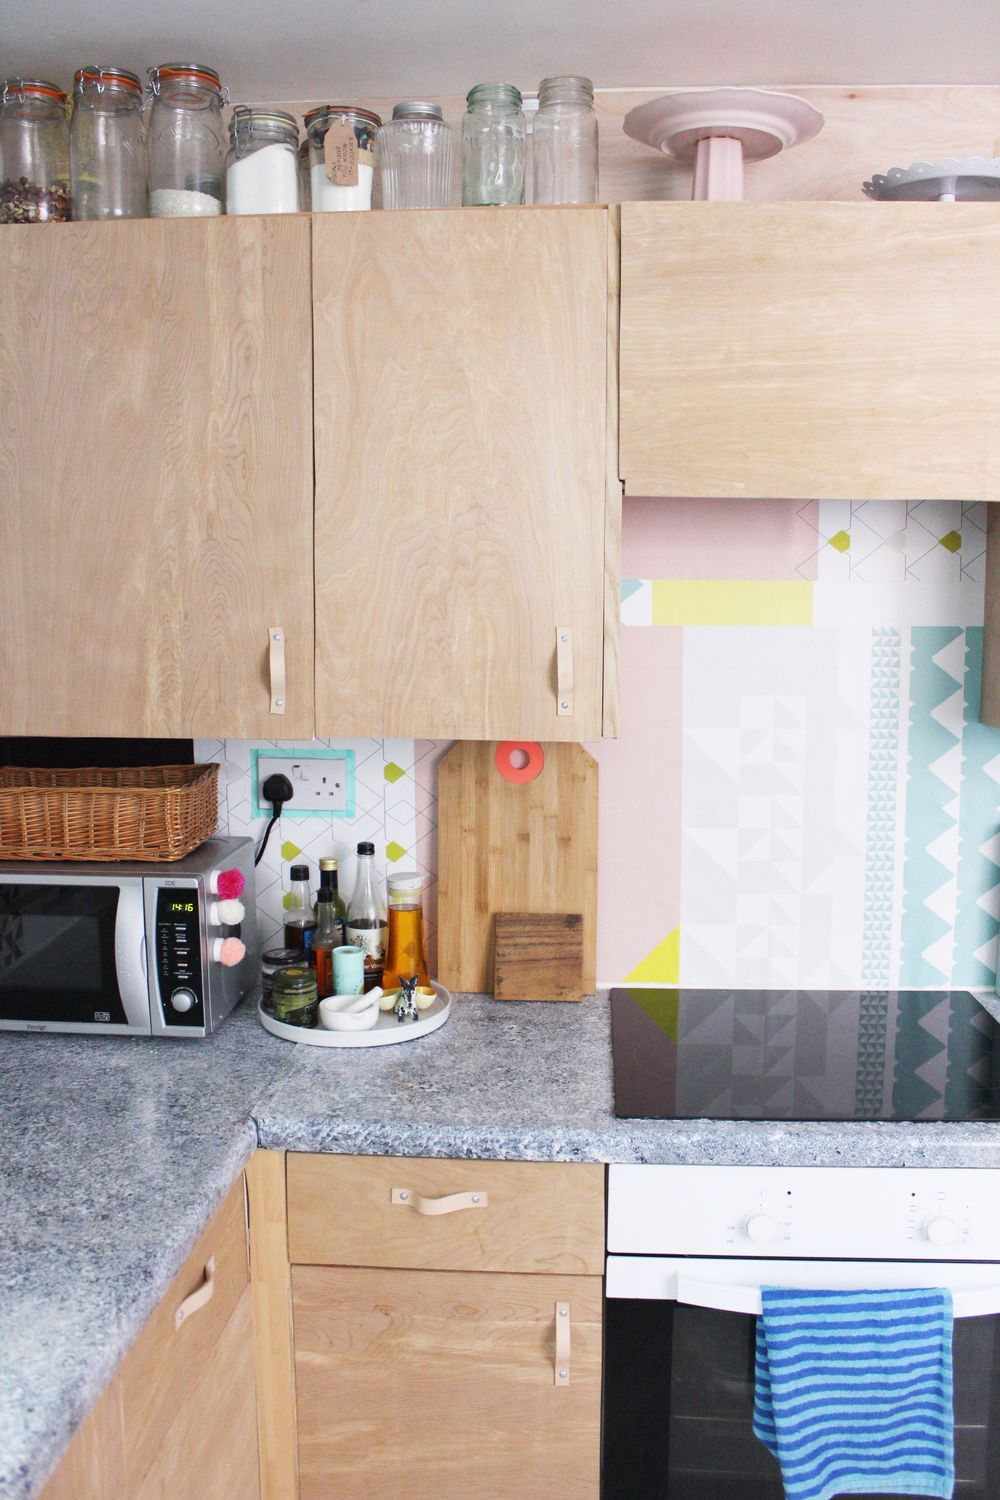 a modern diy kitchen makeover on a budget. love the plywood cabinets